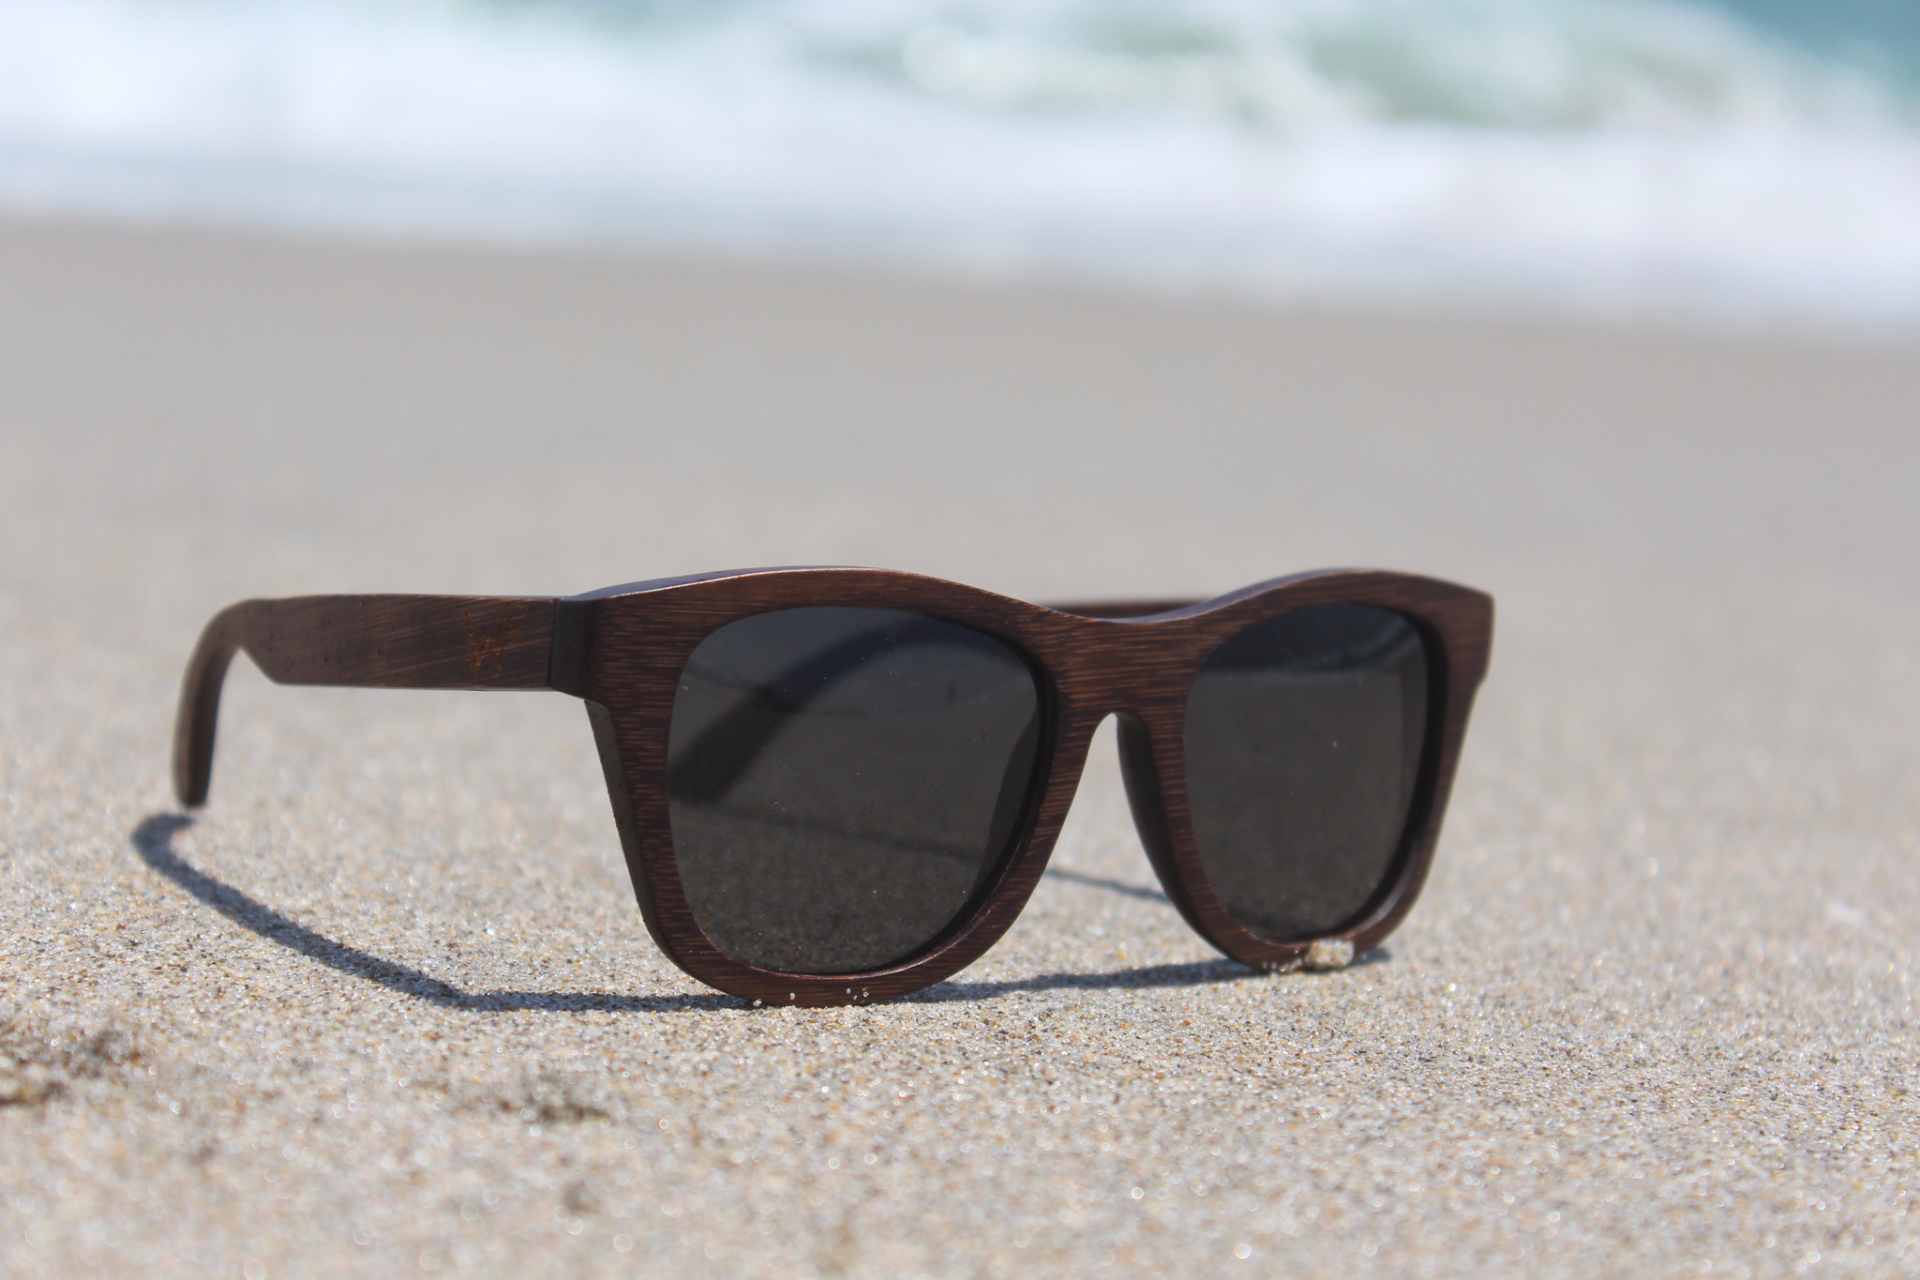 8c1800ca09 100% Natural Bamboo polarized sunglasses that float in the water. Each pair  of sunglasses